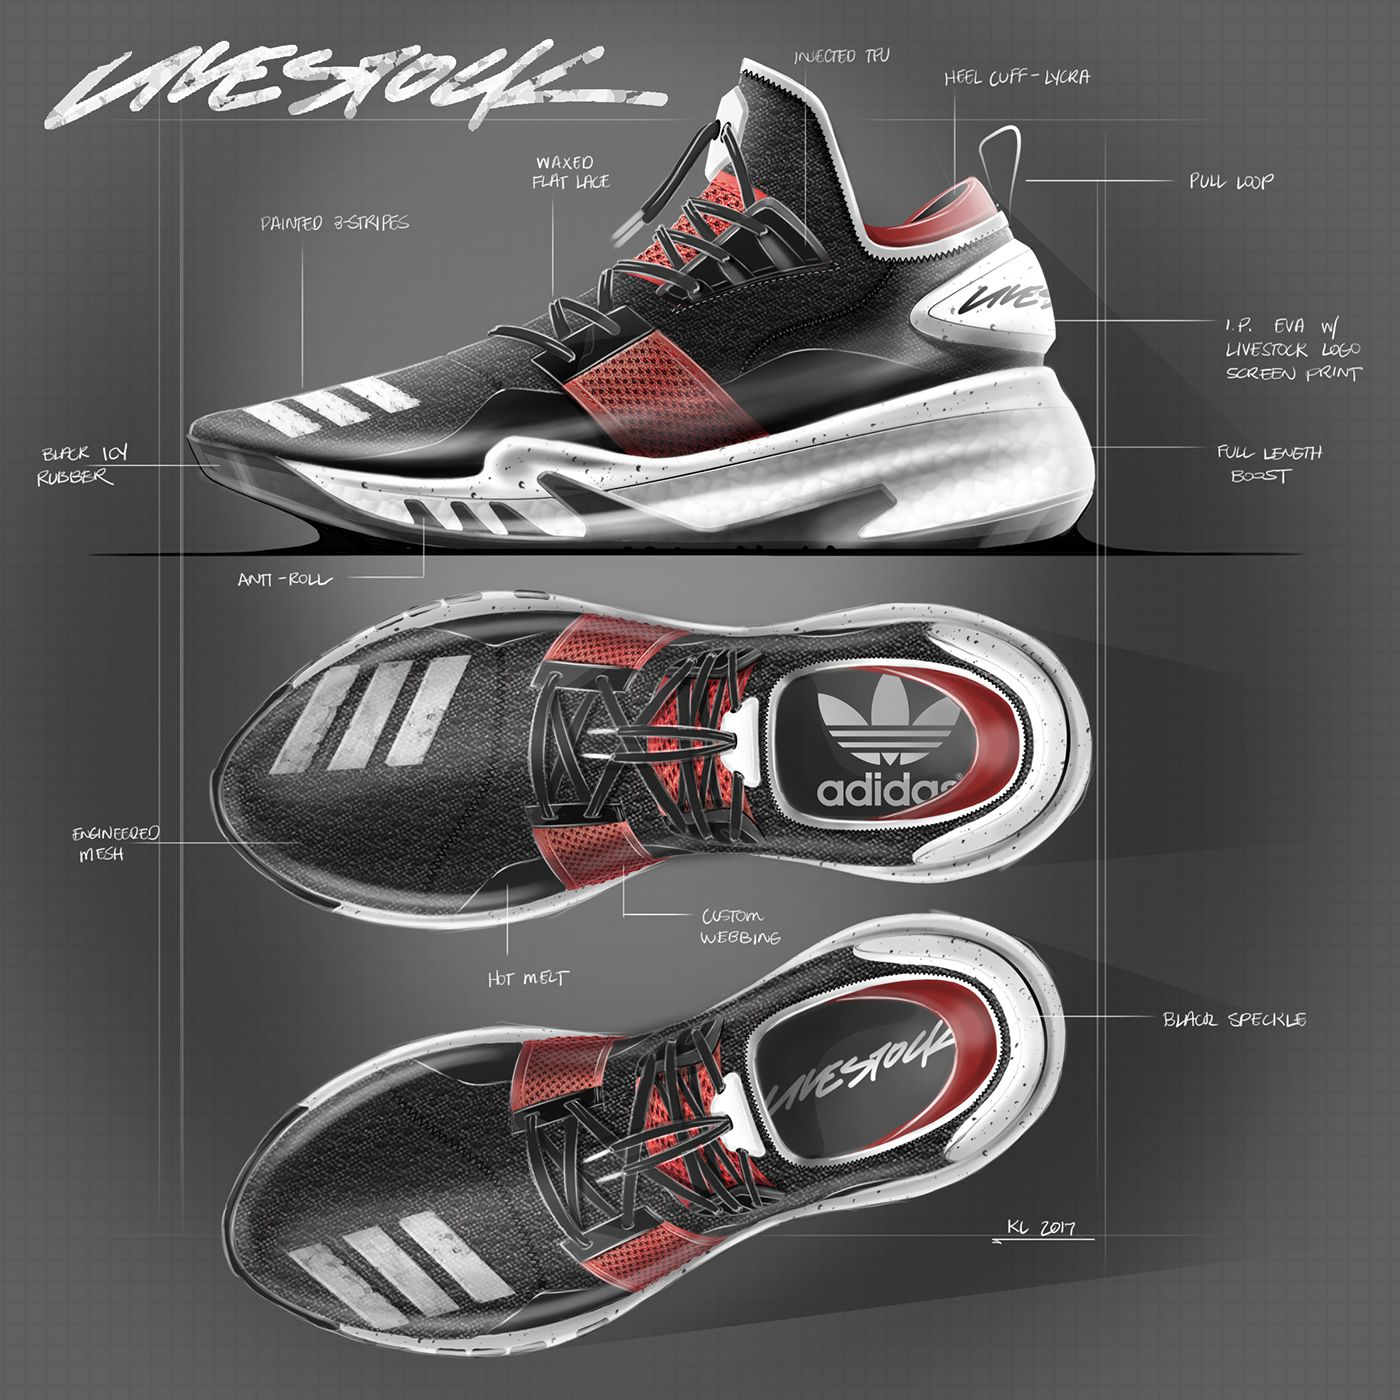 2017 Sketches on Behance Sneakers sketch, Shoe design